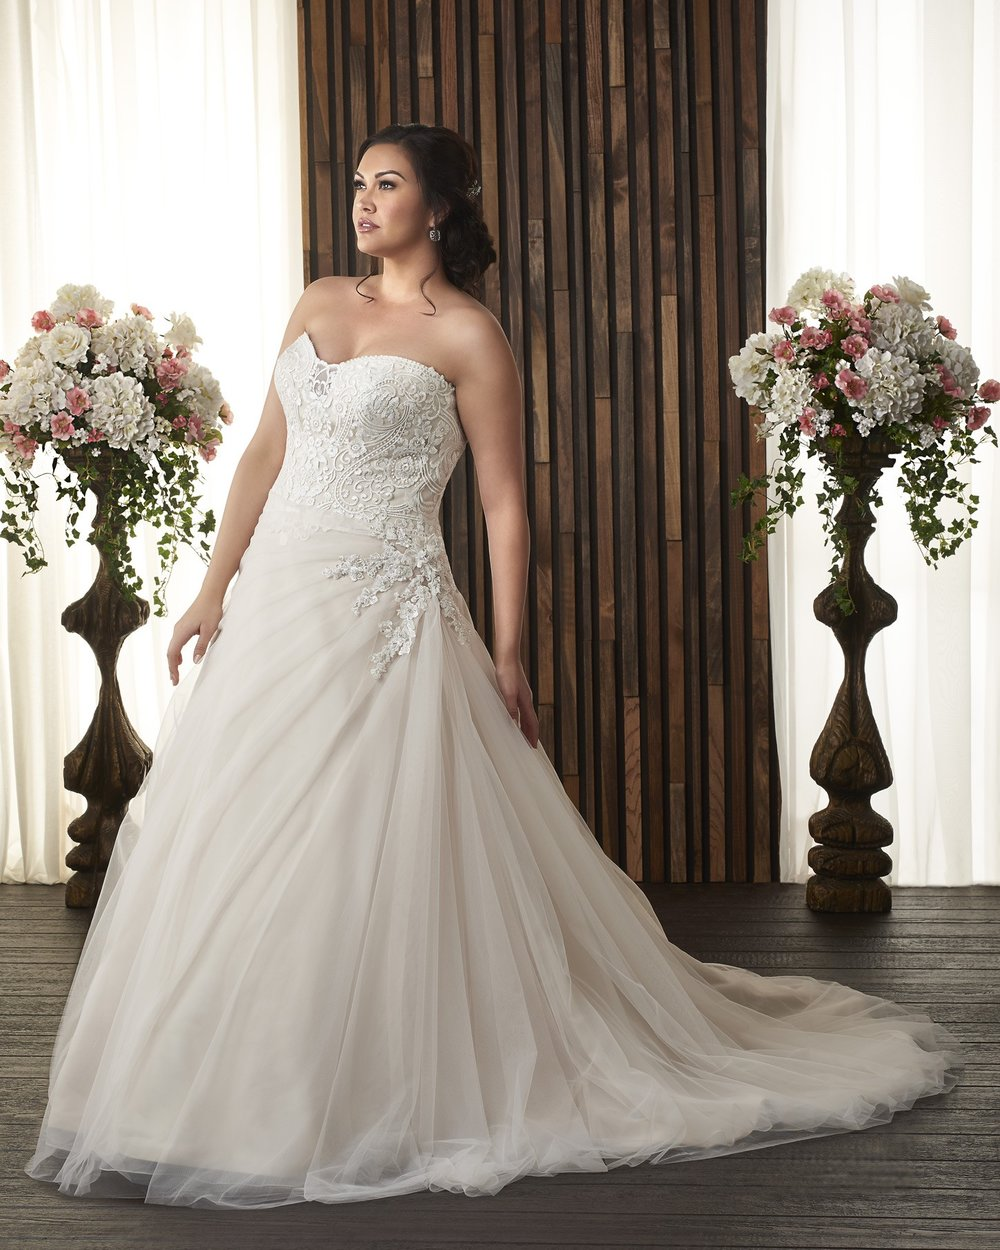 BonnyBridal-BridesbyYoung-PlusSizeWeddingDress-1728.jpg